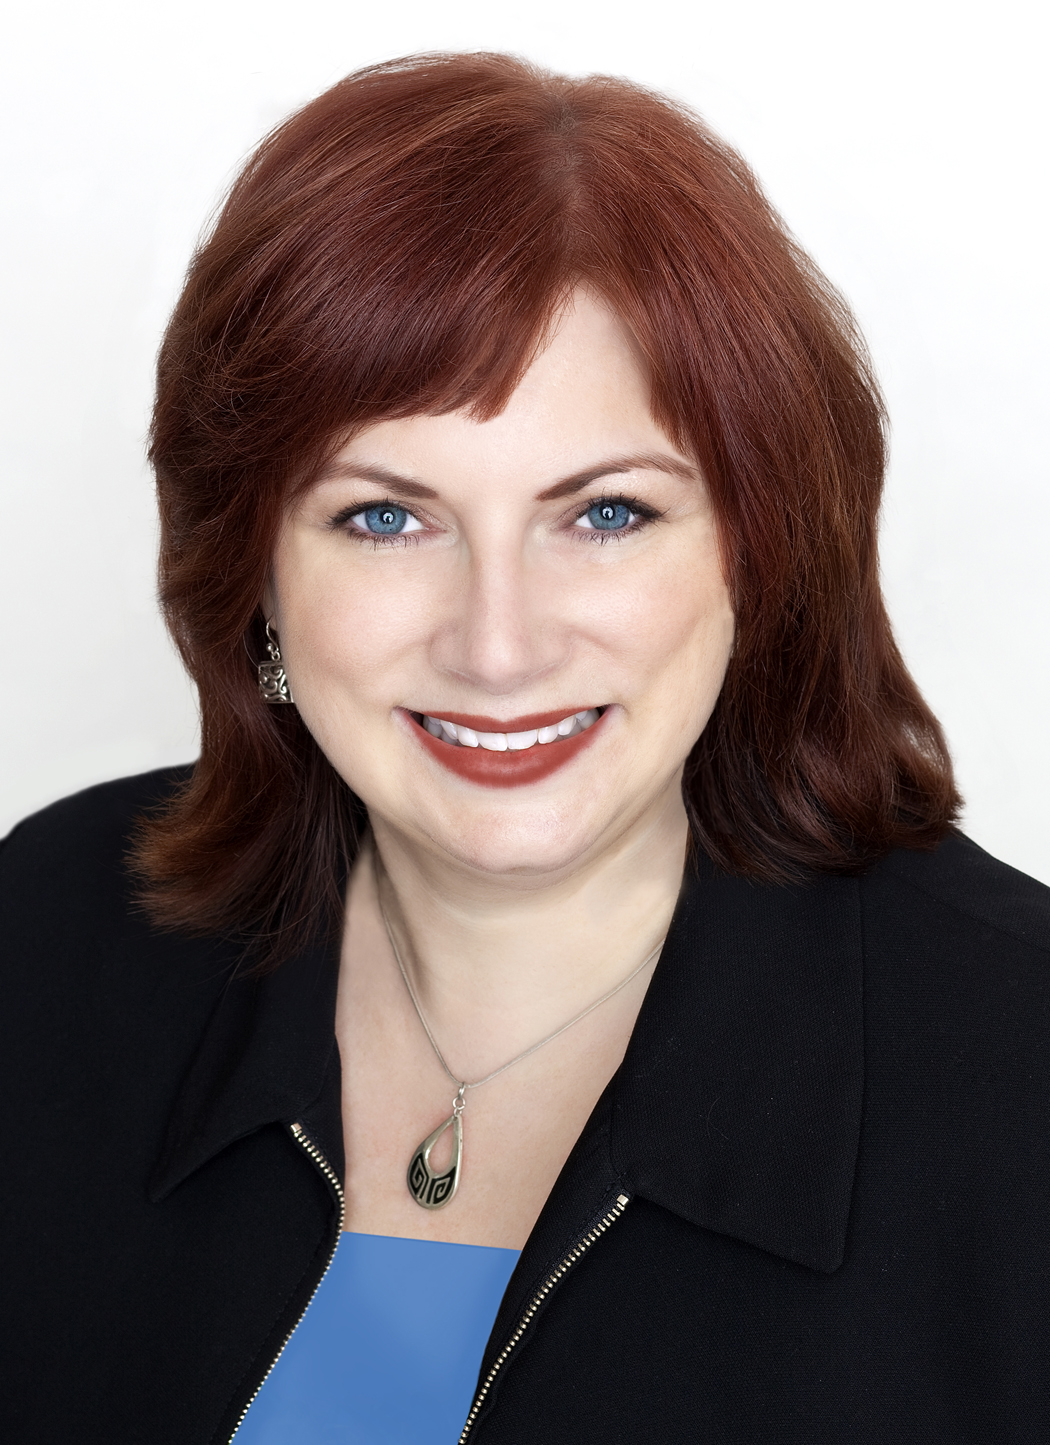 Strategist and Professional Speaker Pam Gilchrist Will Present A Seminar On Personal Branding & PR For Speakers